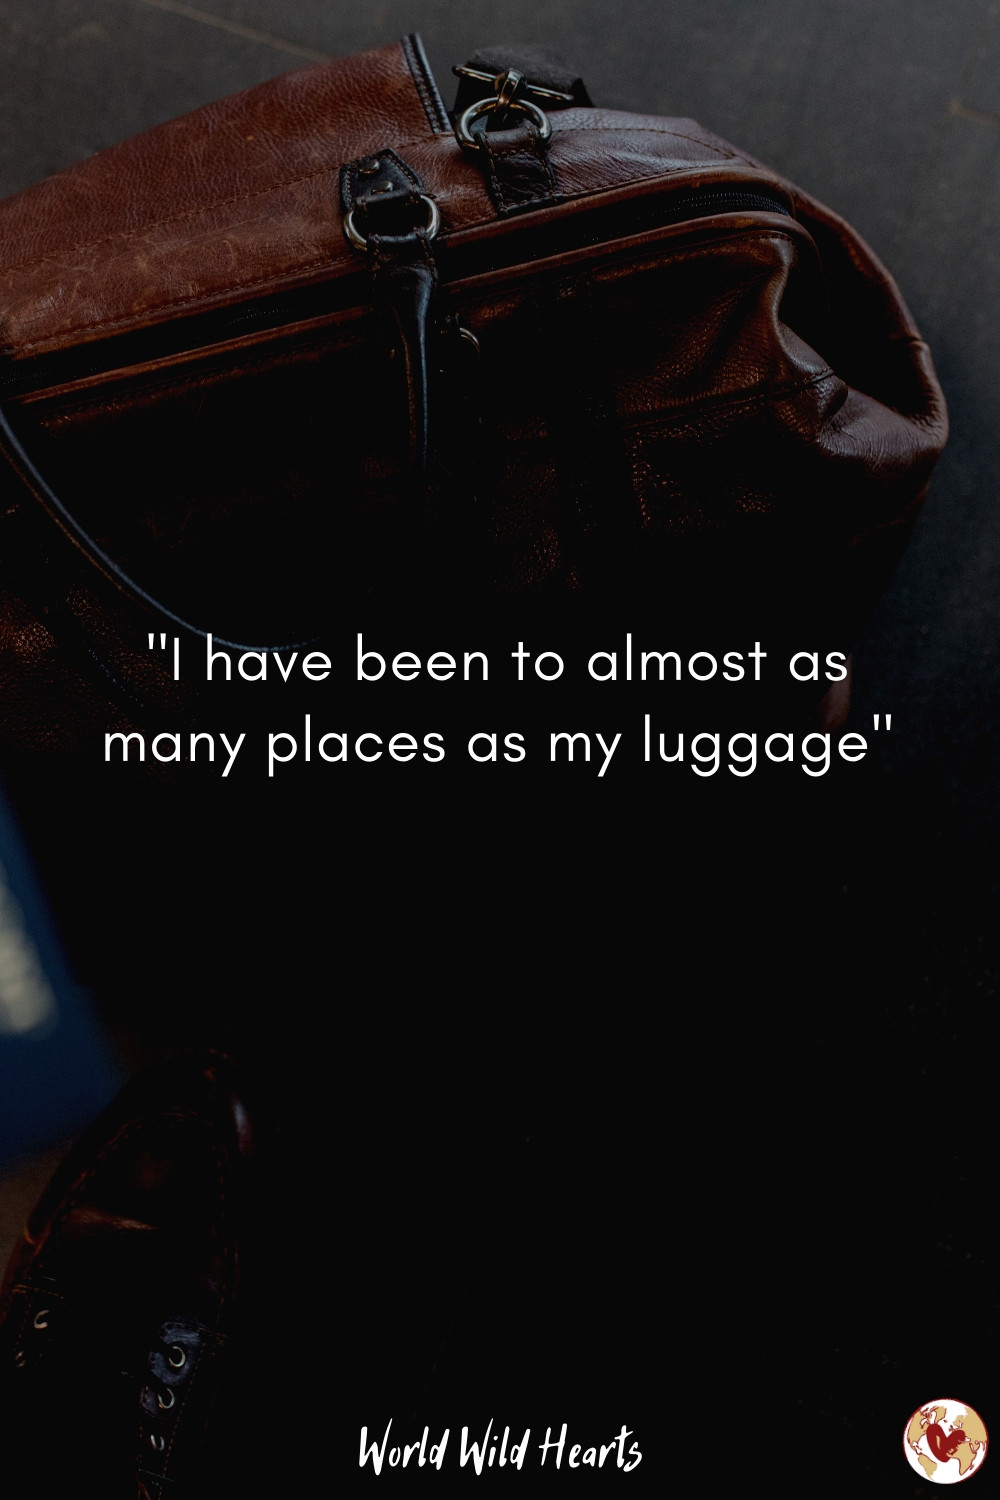 Lost luggage quote